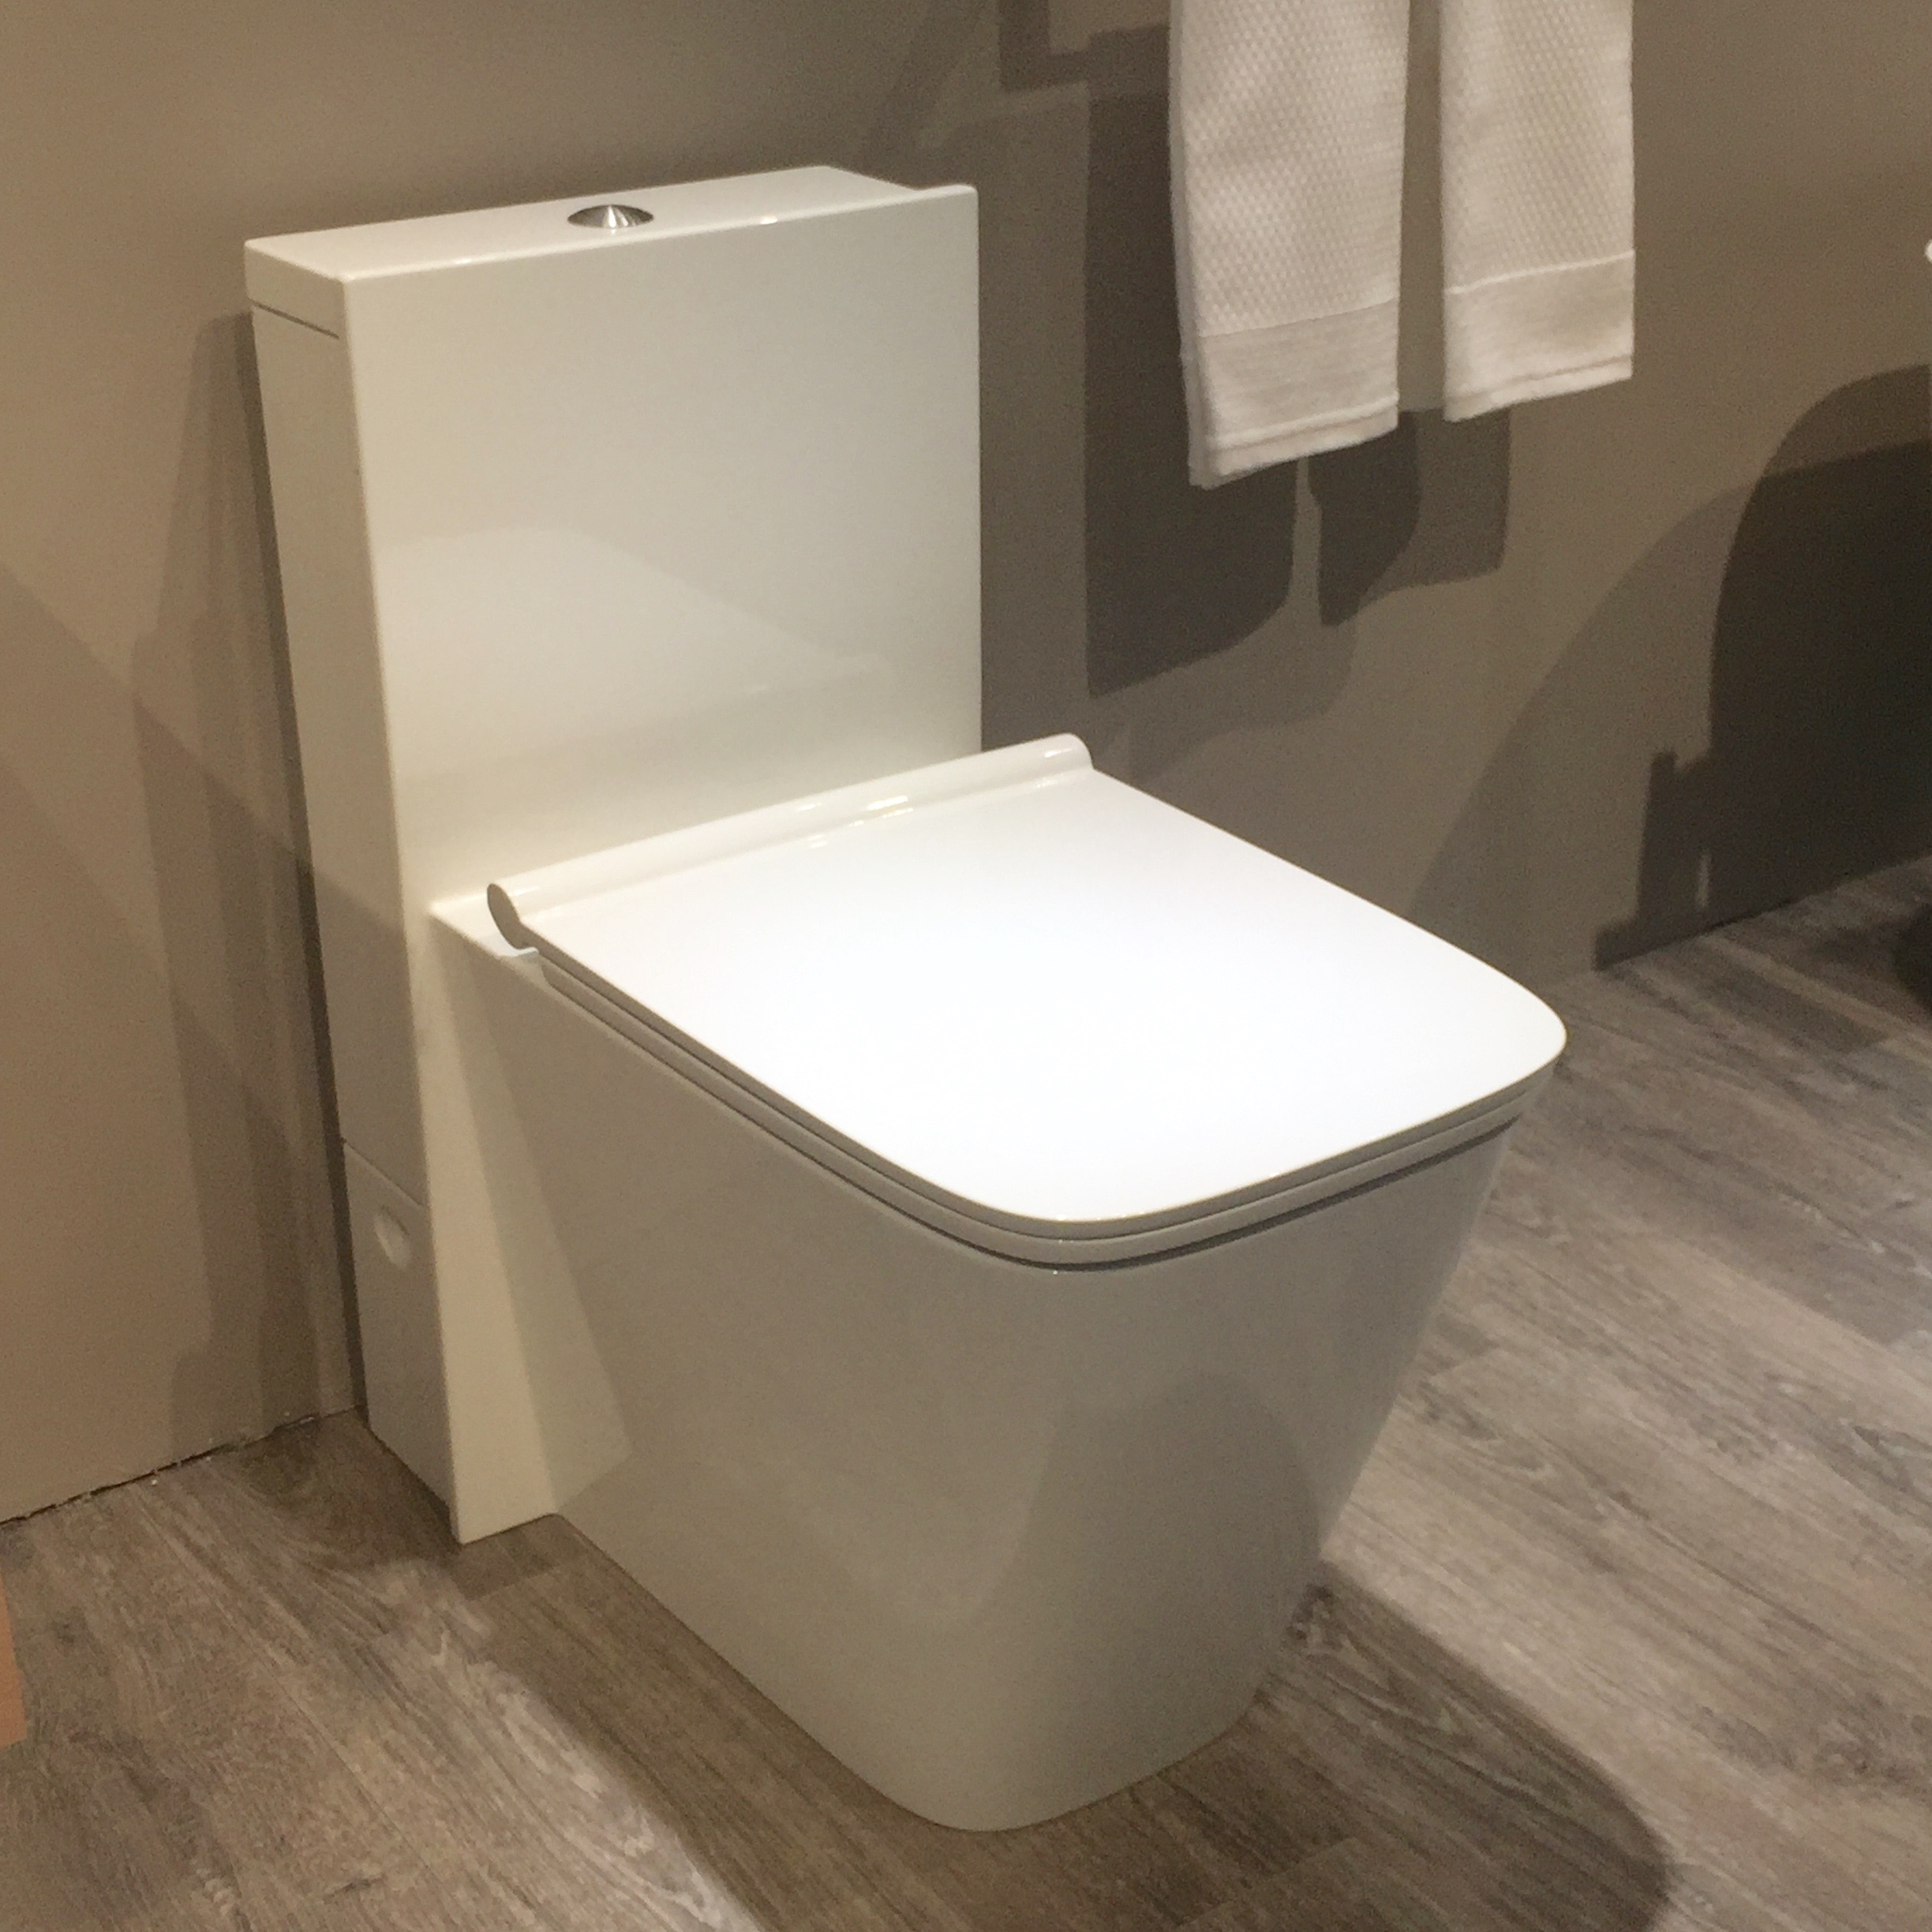 When a wall-hung toilet isn't possible this one is at the ready. I love its monolithic look.